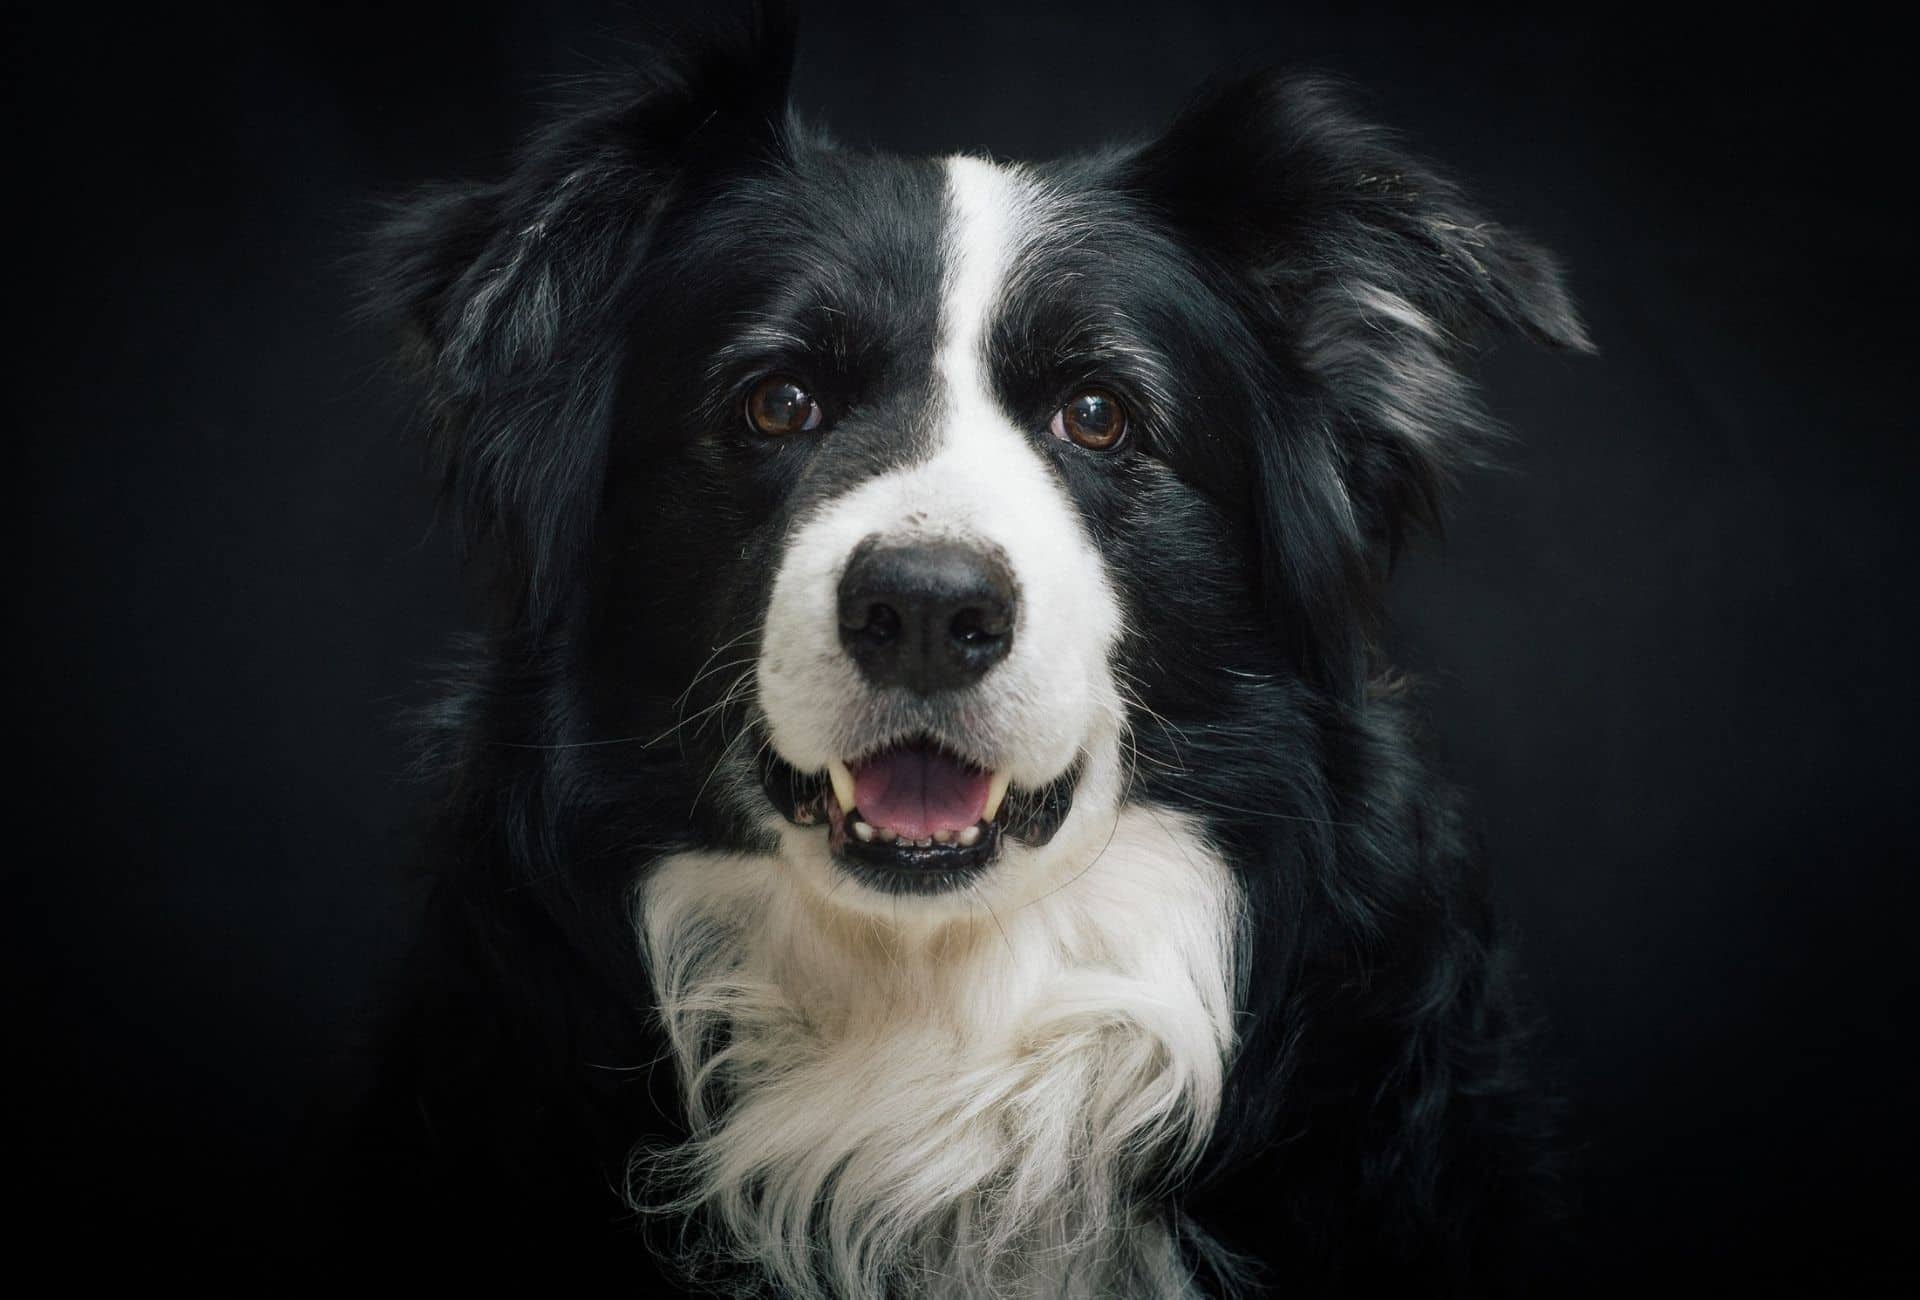 Beautiful black border Collie with white chest patch and white between the eyes in front of black background.